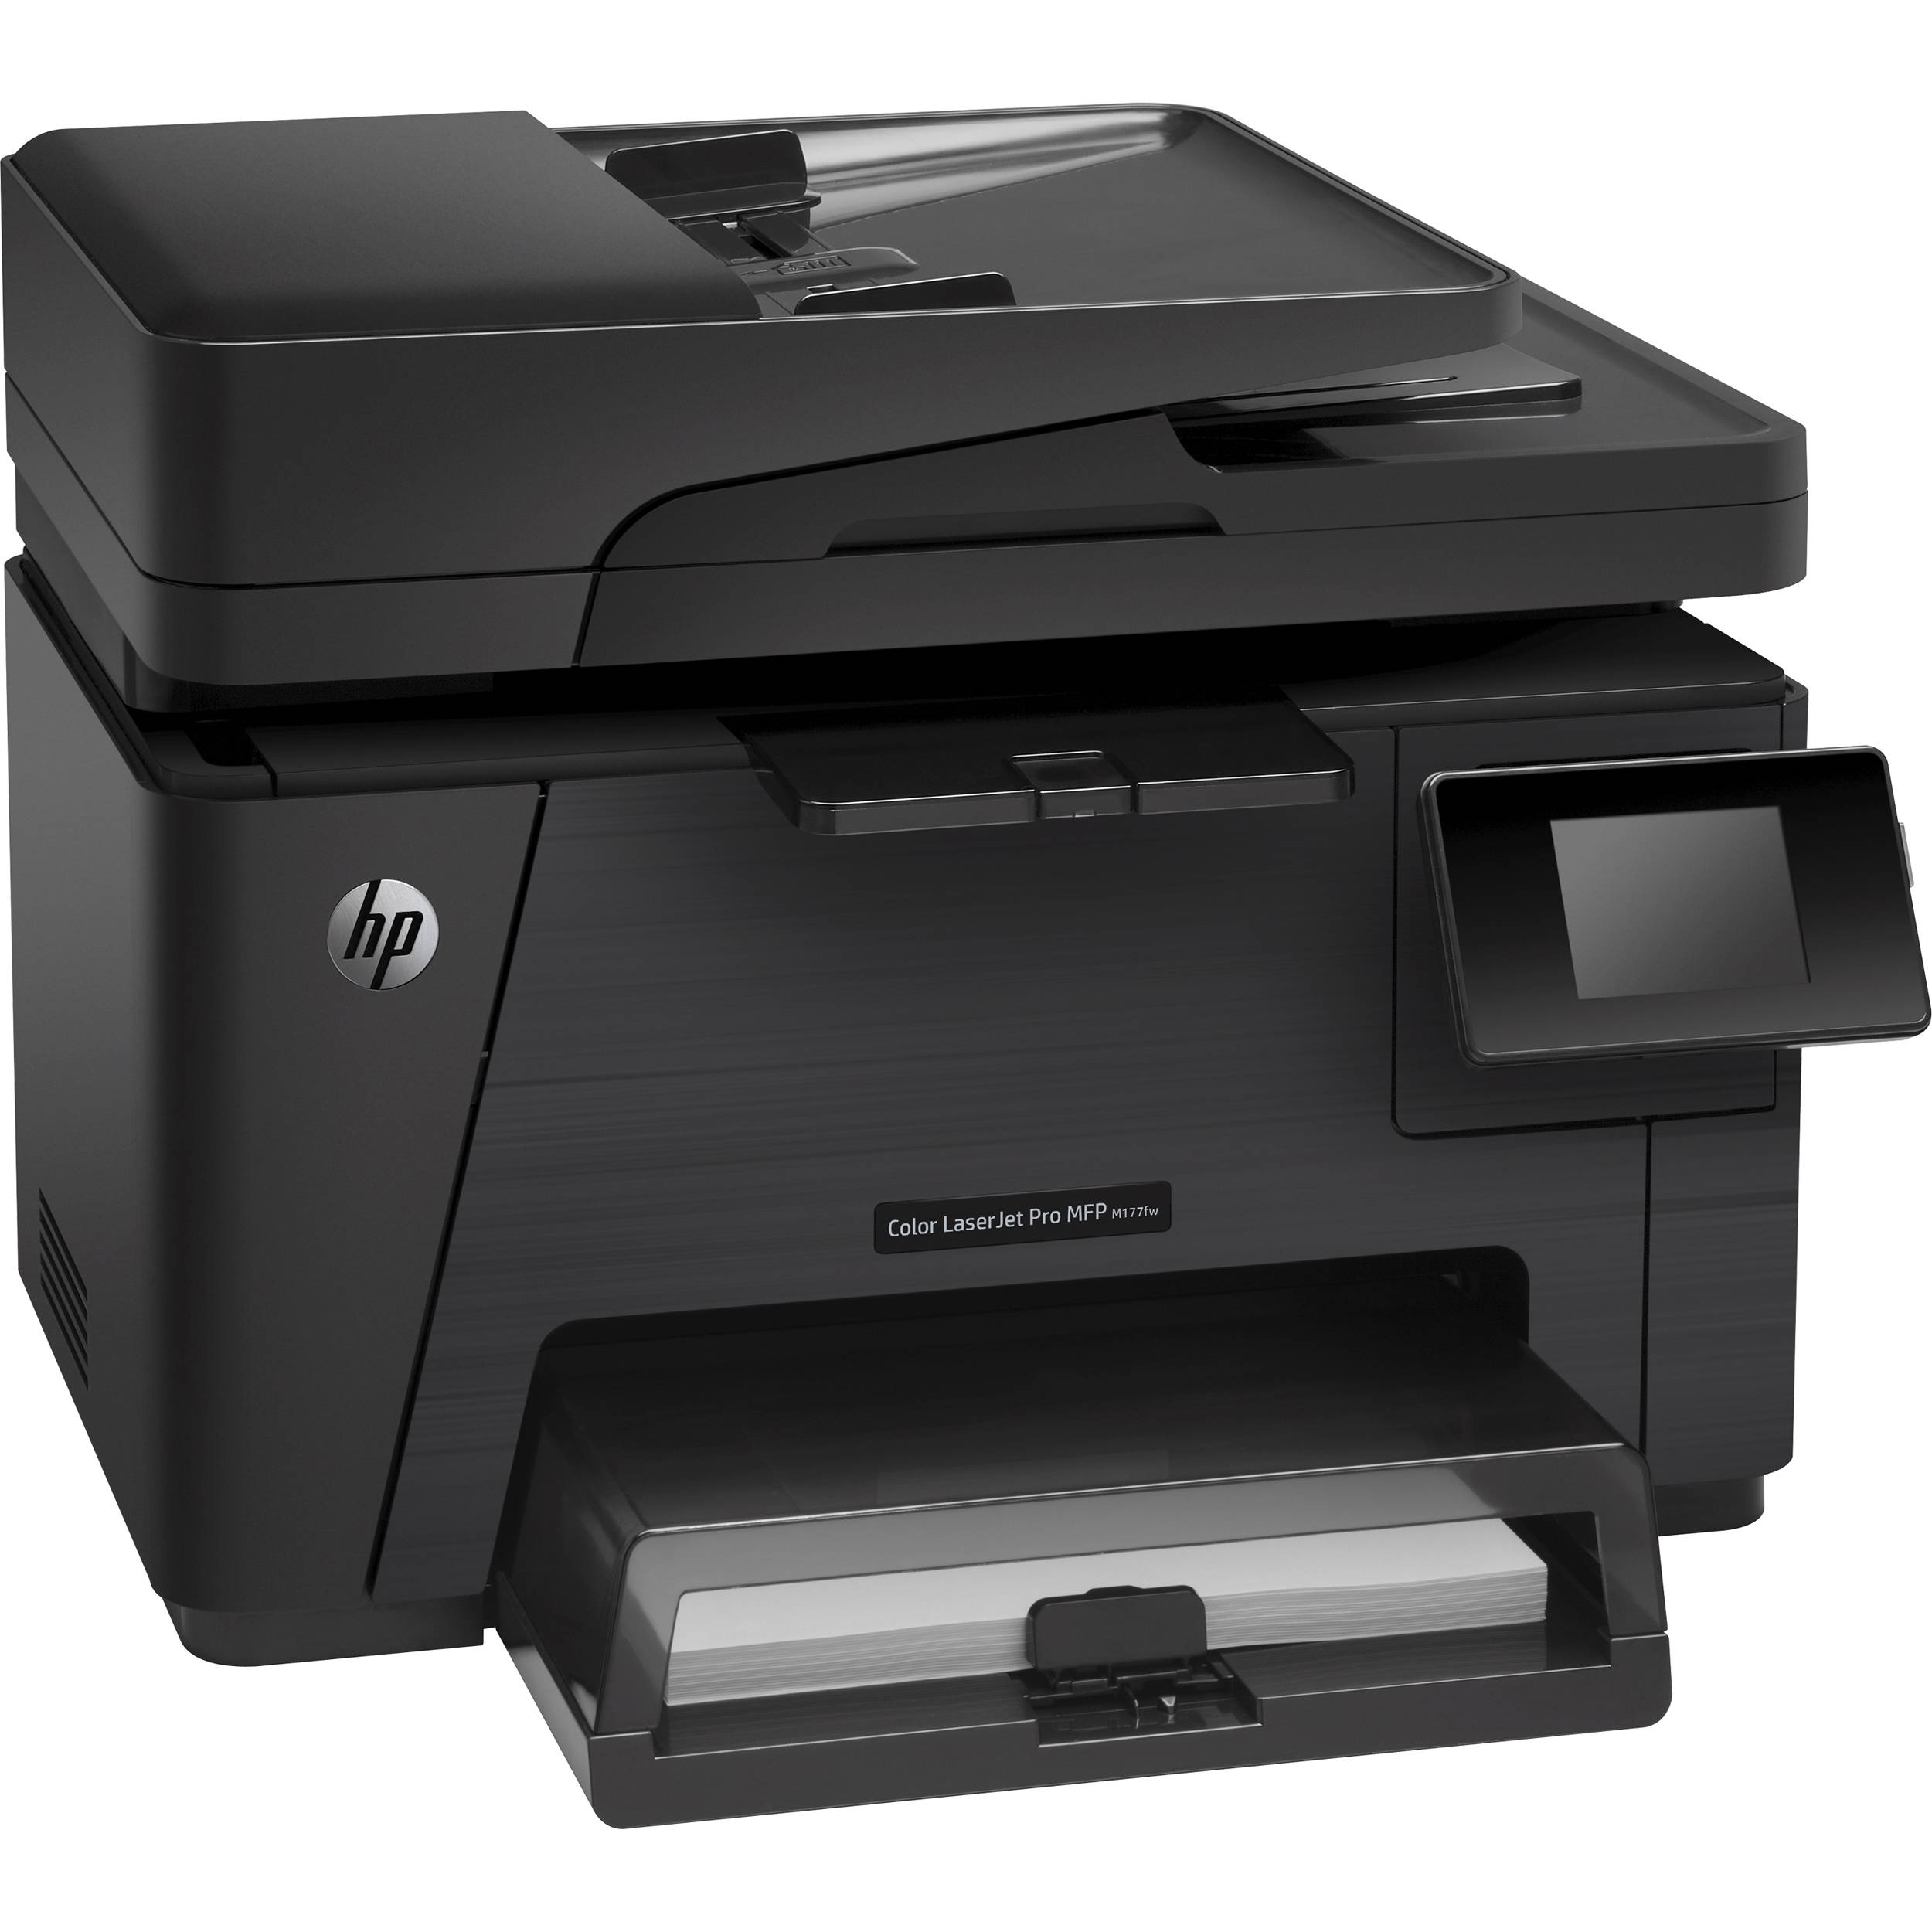 Hp M177fw Laserjet Pro All In One Color Laser Printer